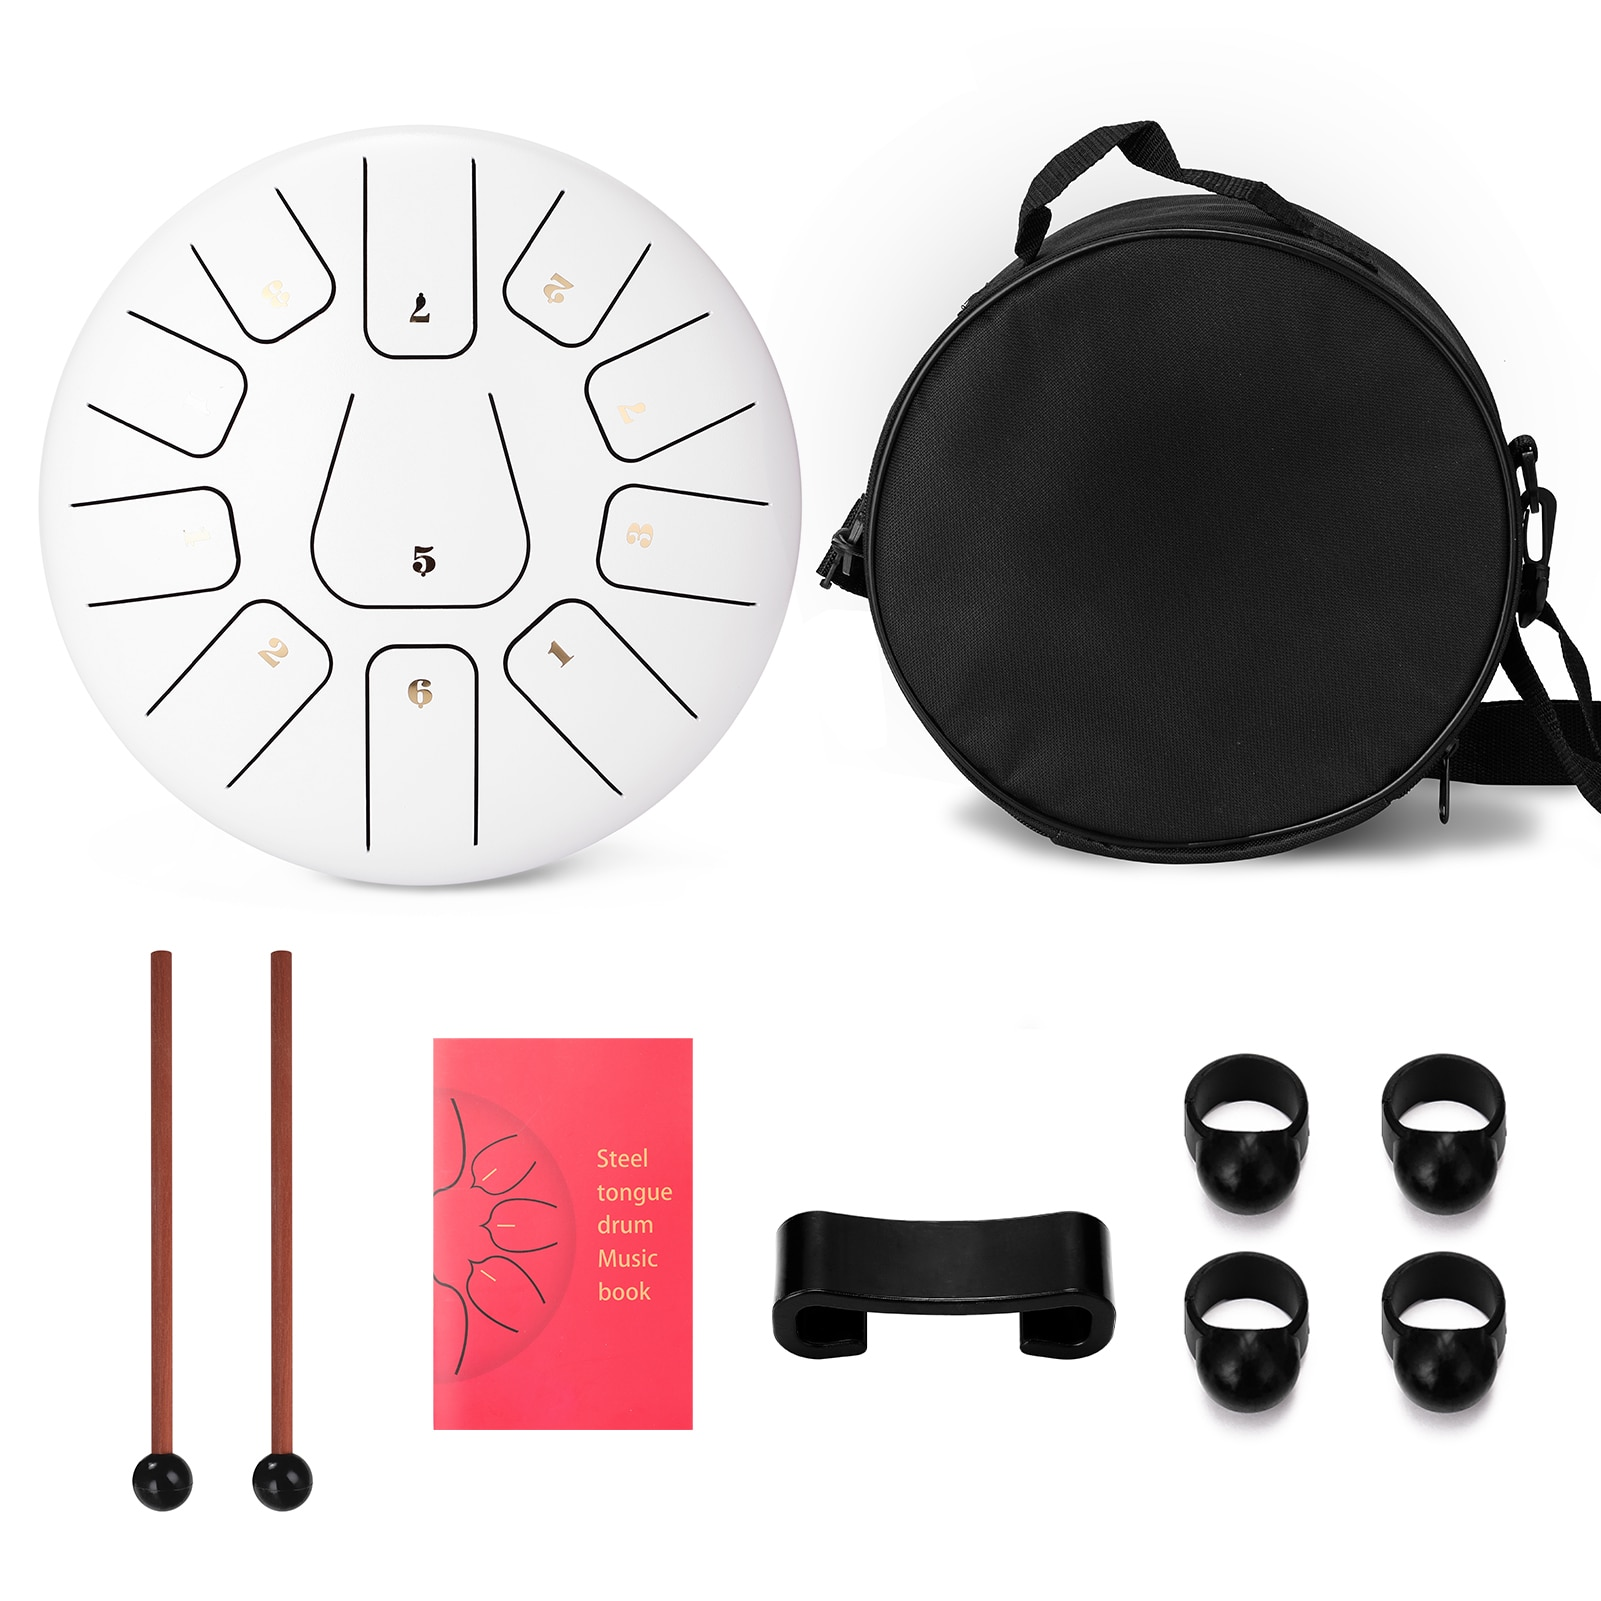 10 inch 11-Tone Steel Tongue Drum Hand Pan Drums with Drumsticks Percussion Musical Instruments